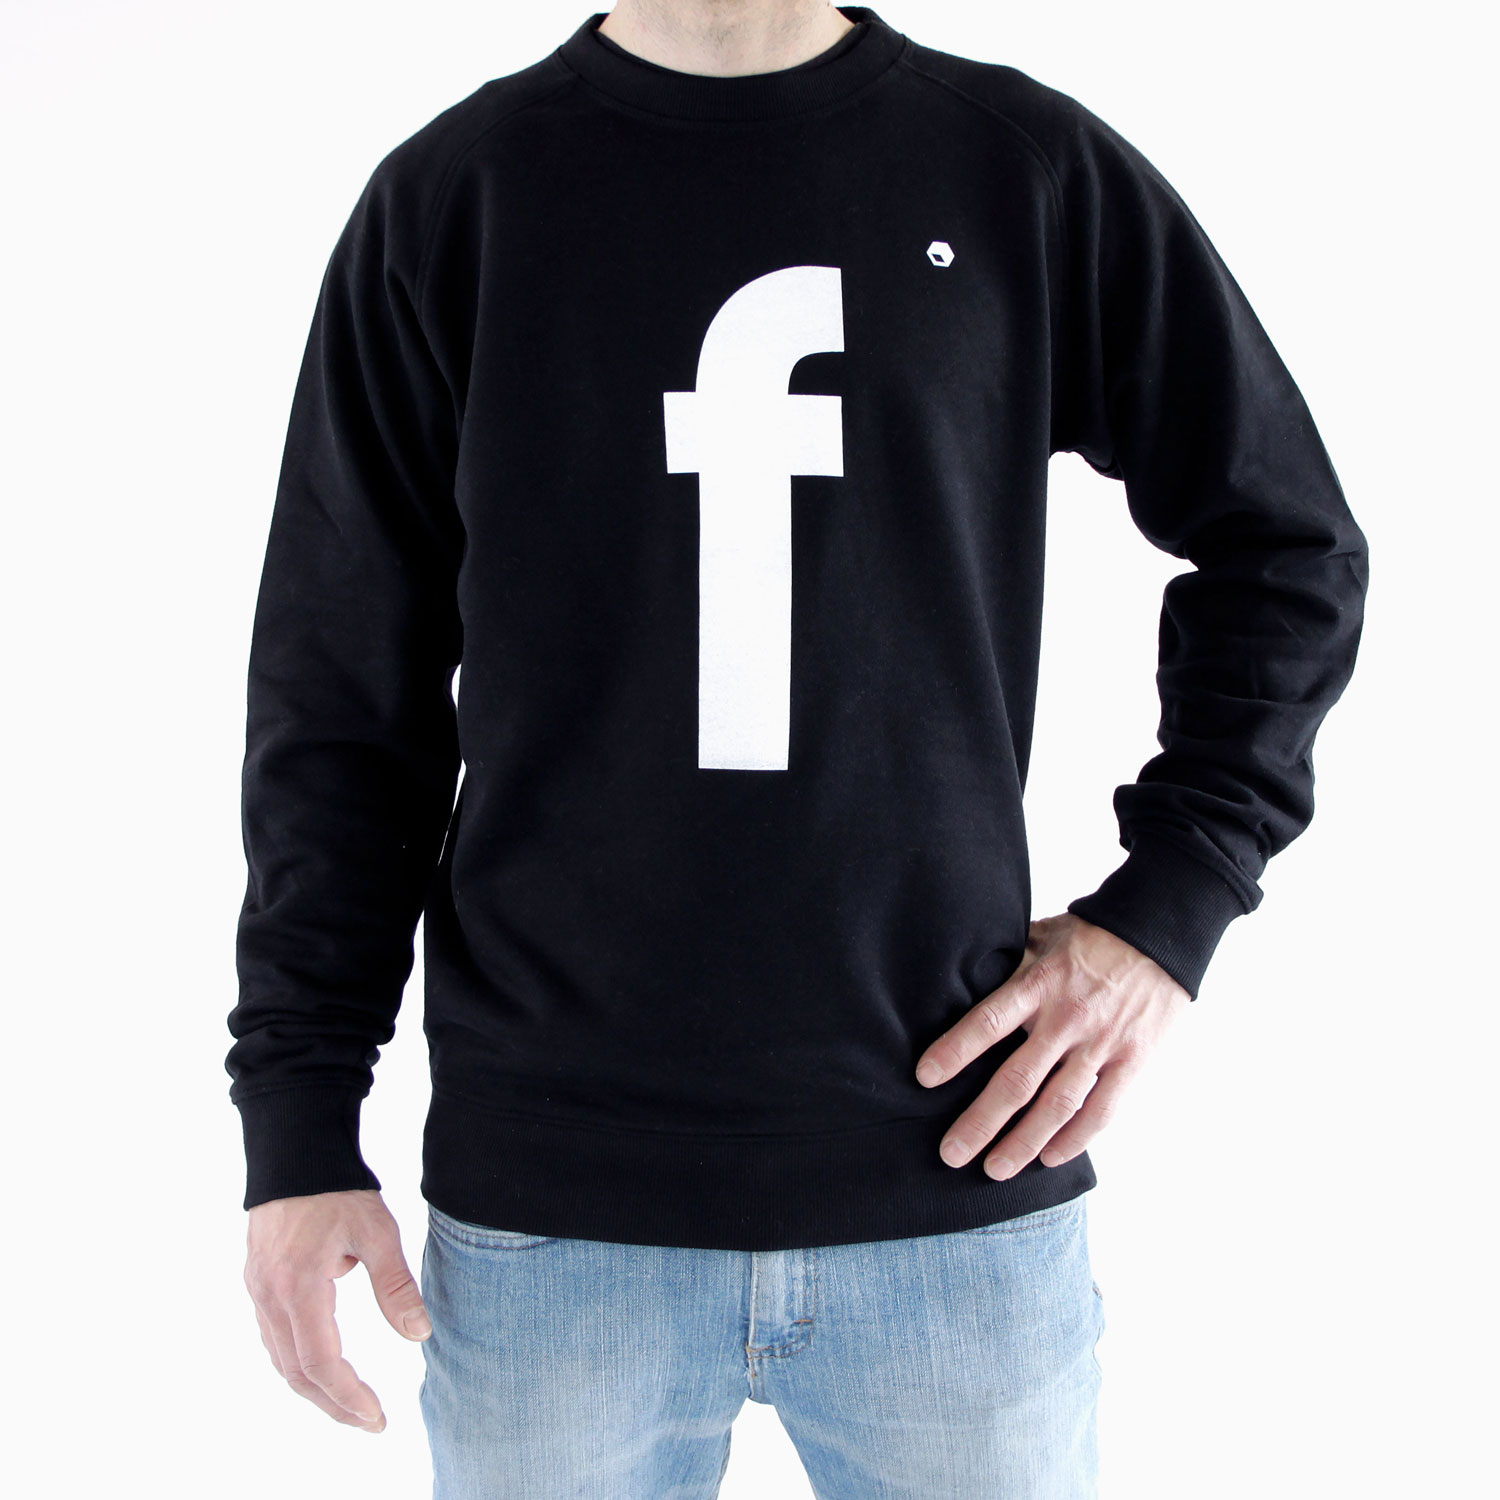 Flathold-apparel-sweat-f-black